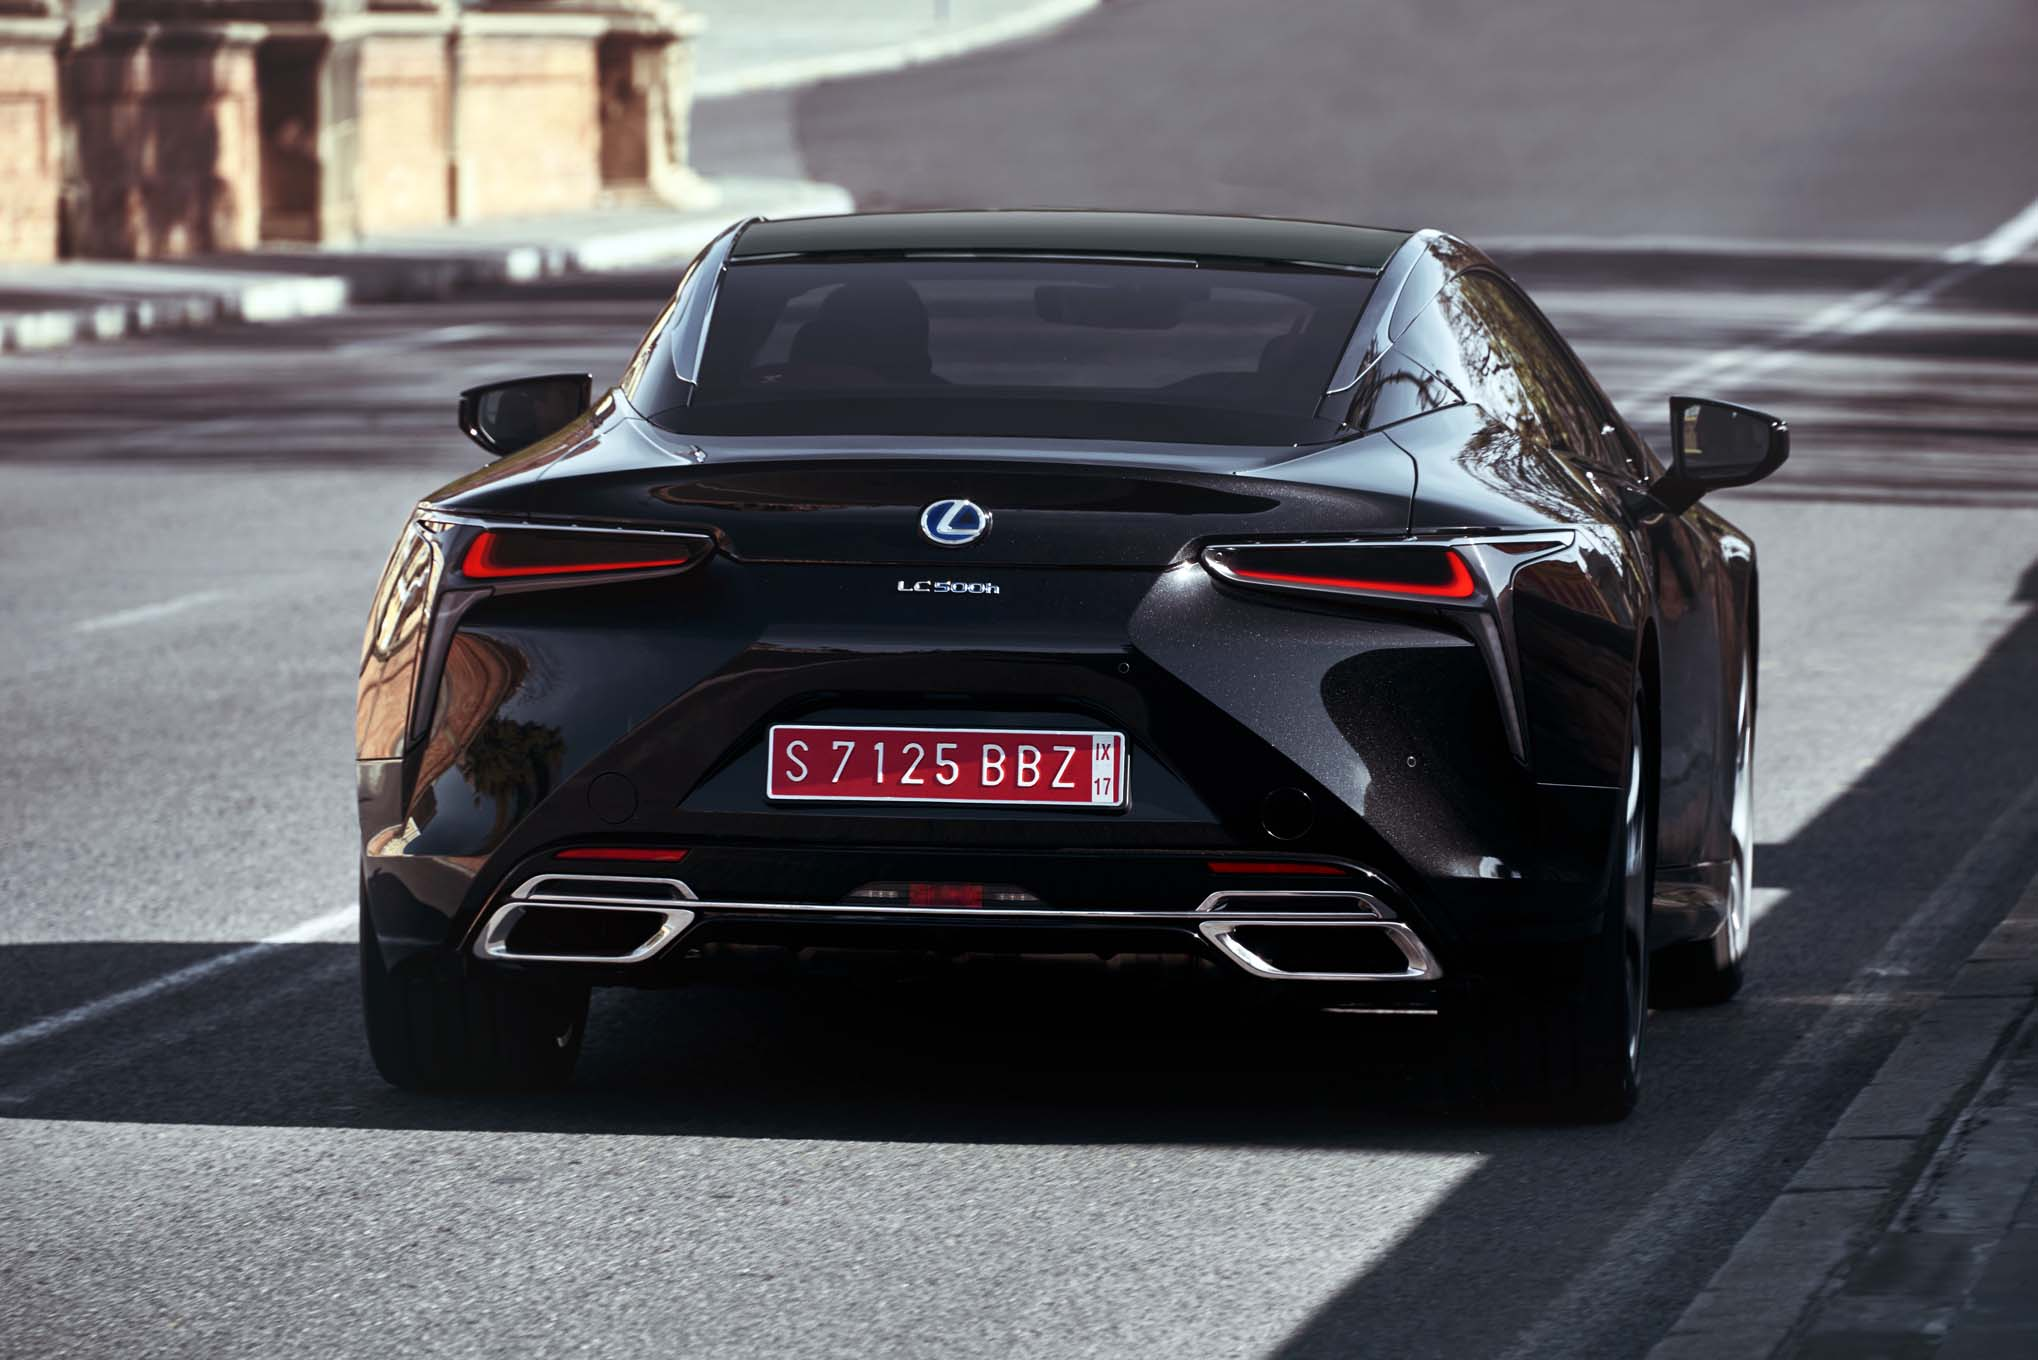 Future Japanese Sports Cars: Nissan GT-R, Lexus SC, And